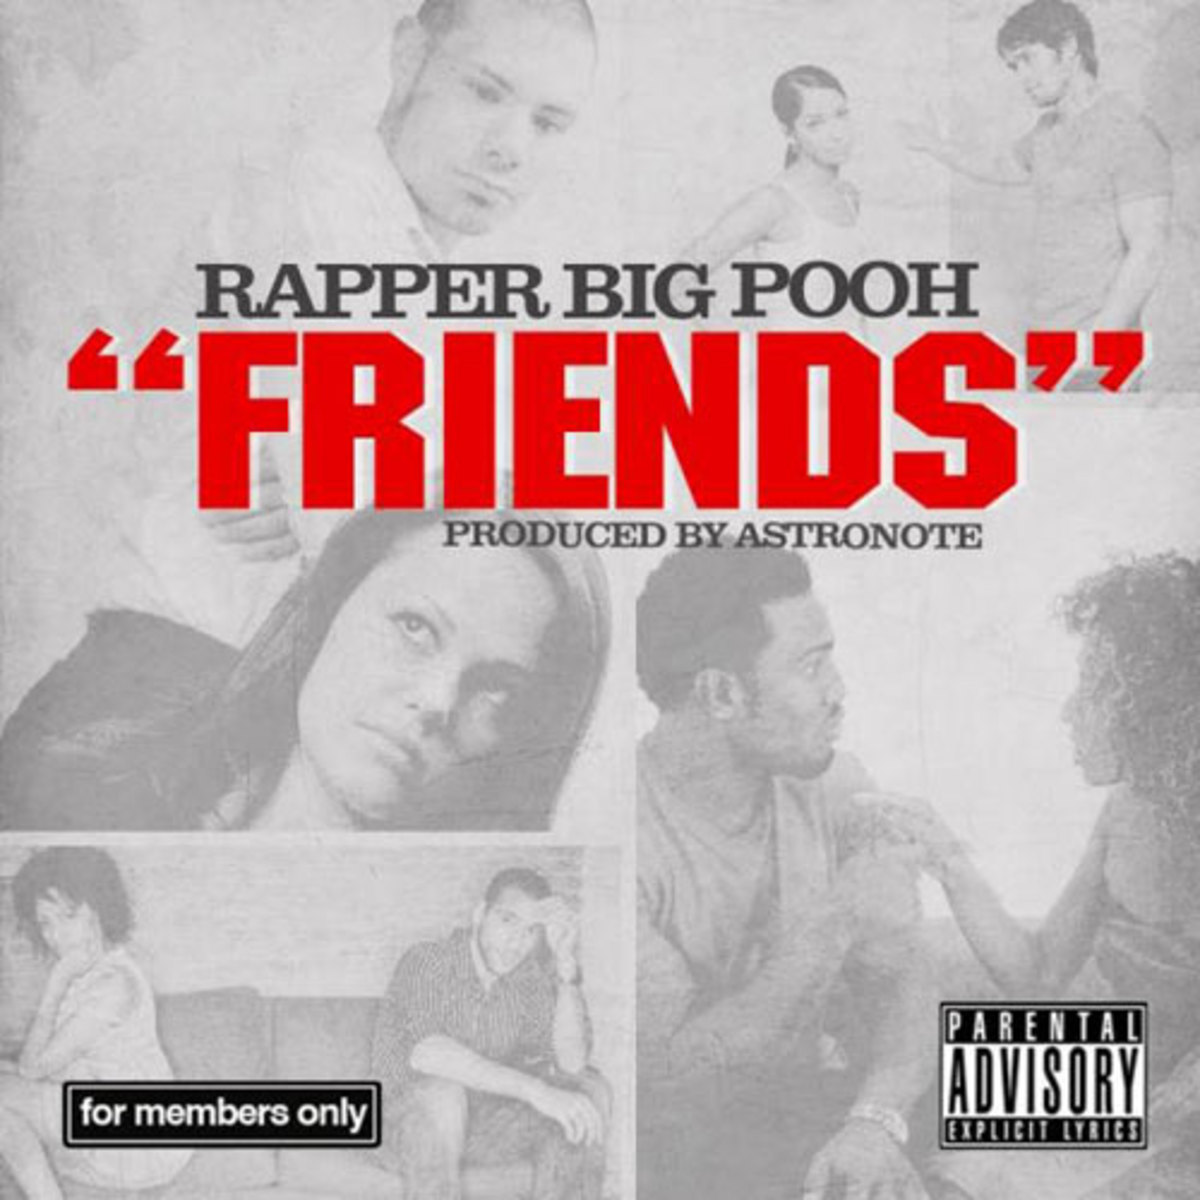 rapperbigpooh-friends.jpg